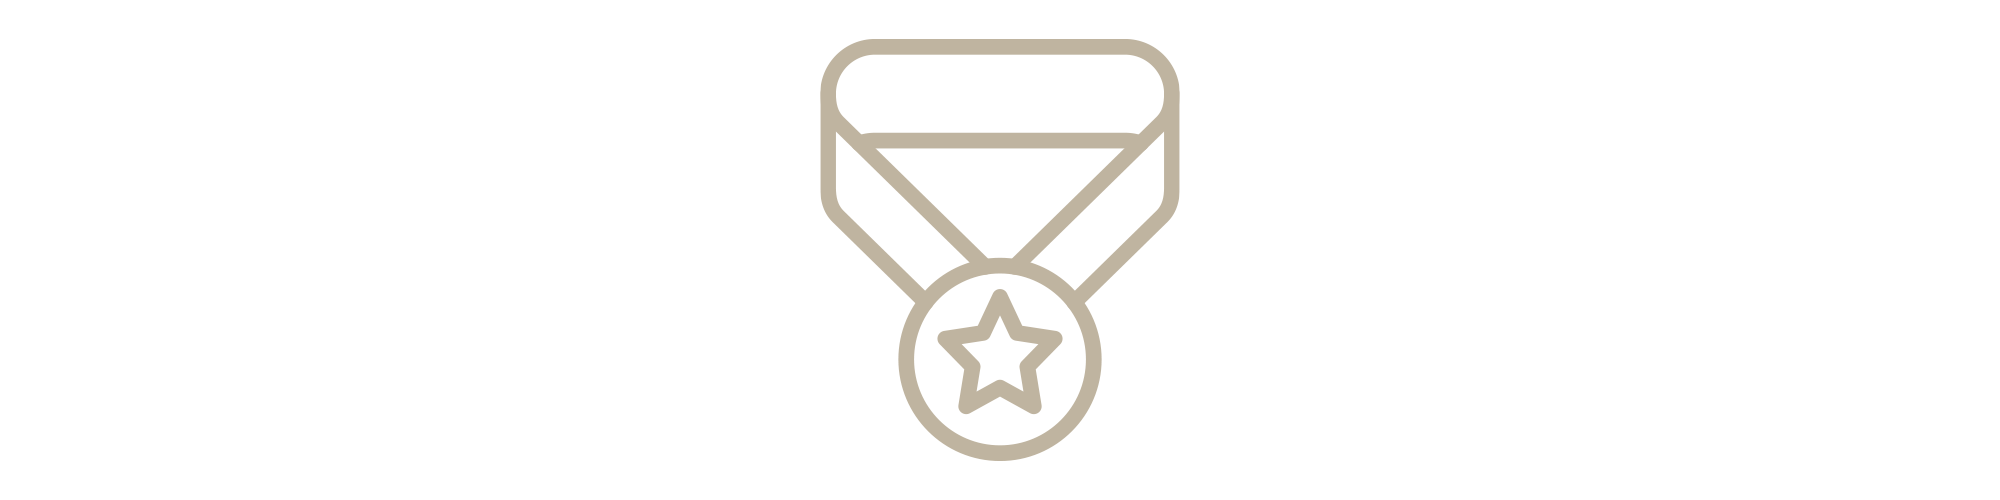 medal-icon.png